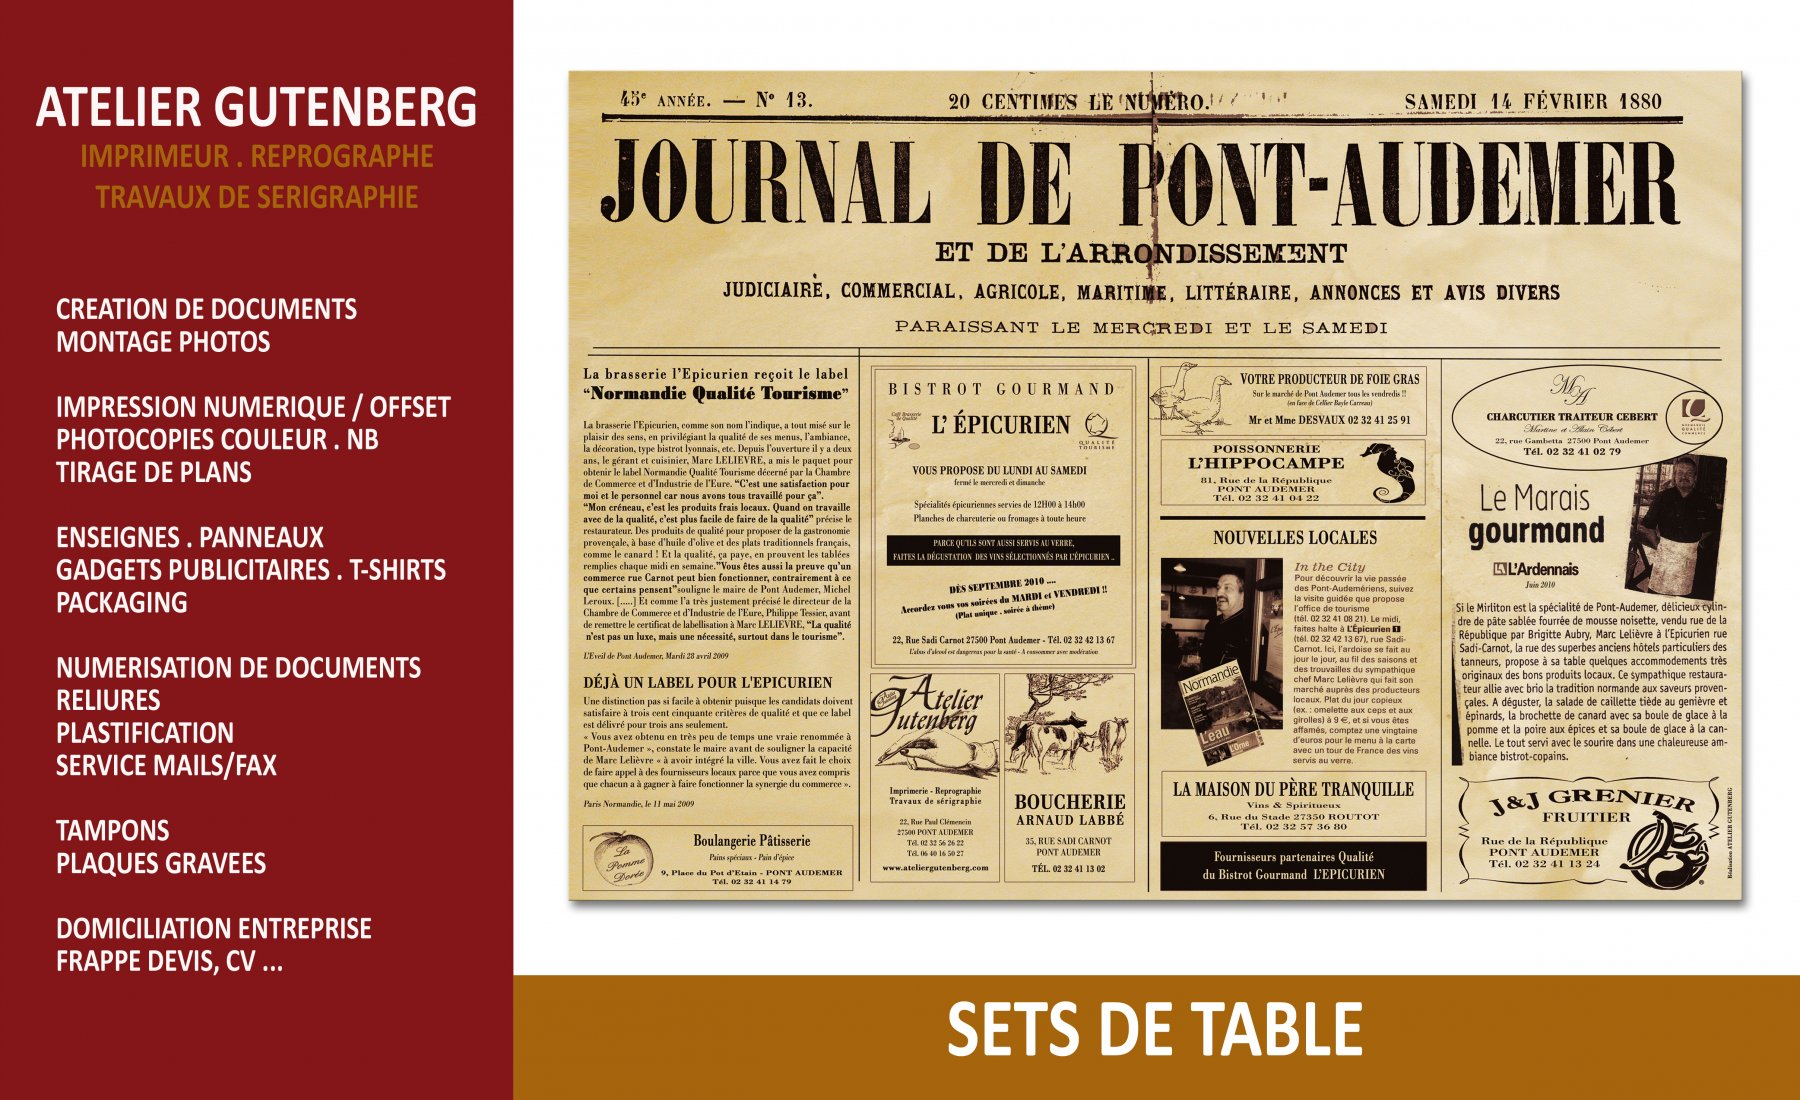 atelier gutenberg set de table